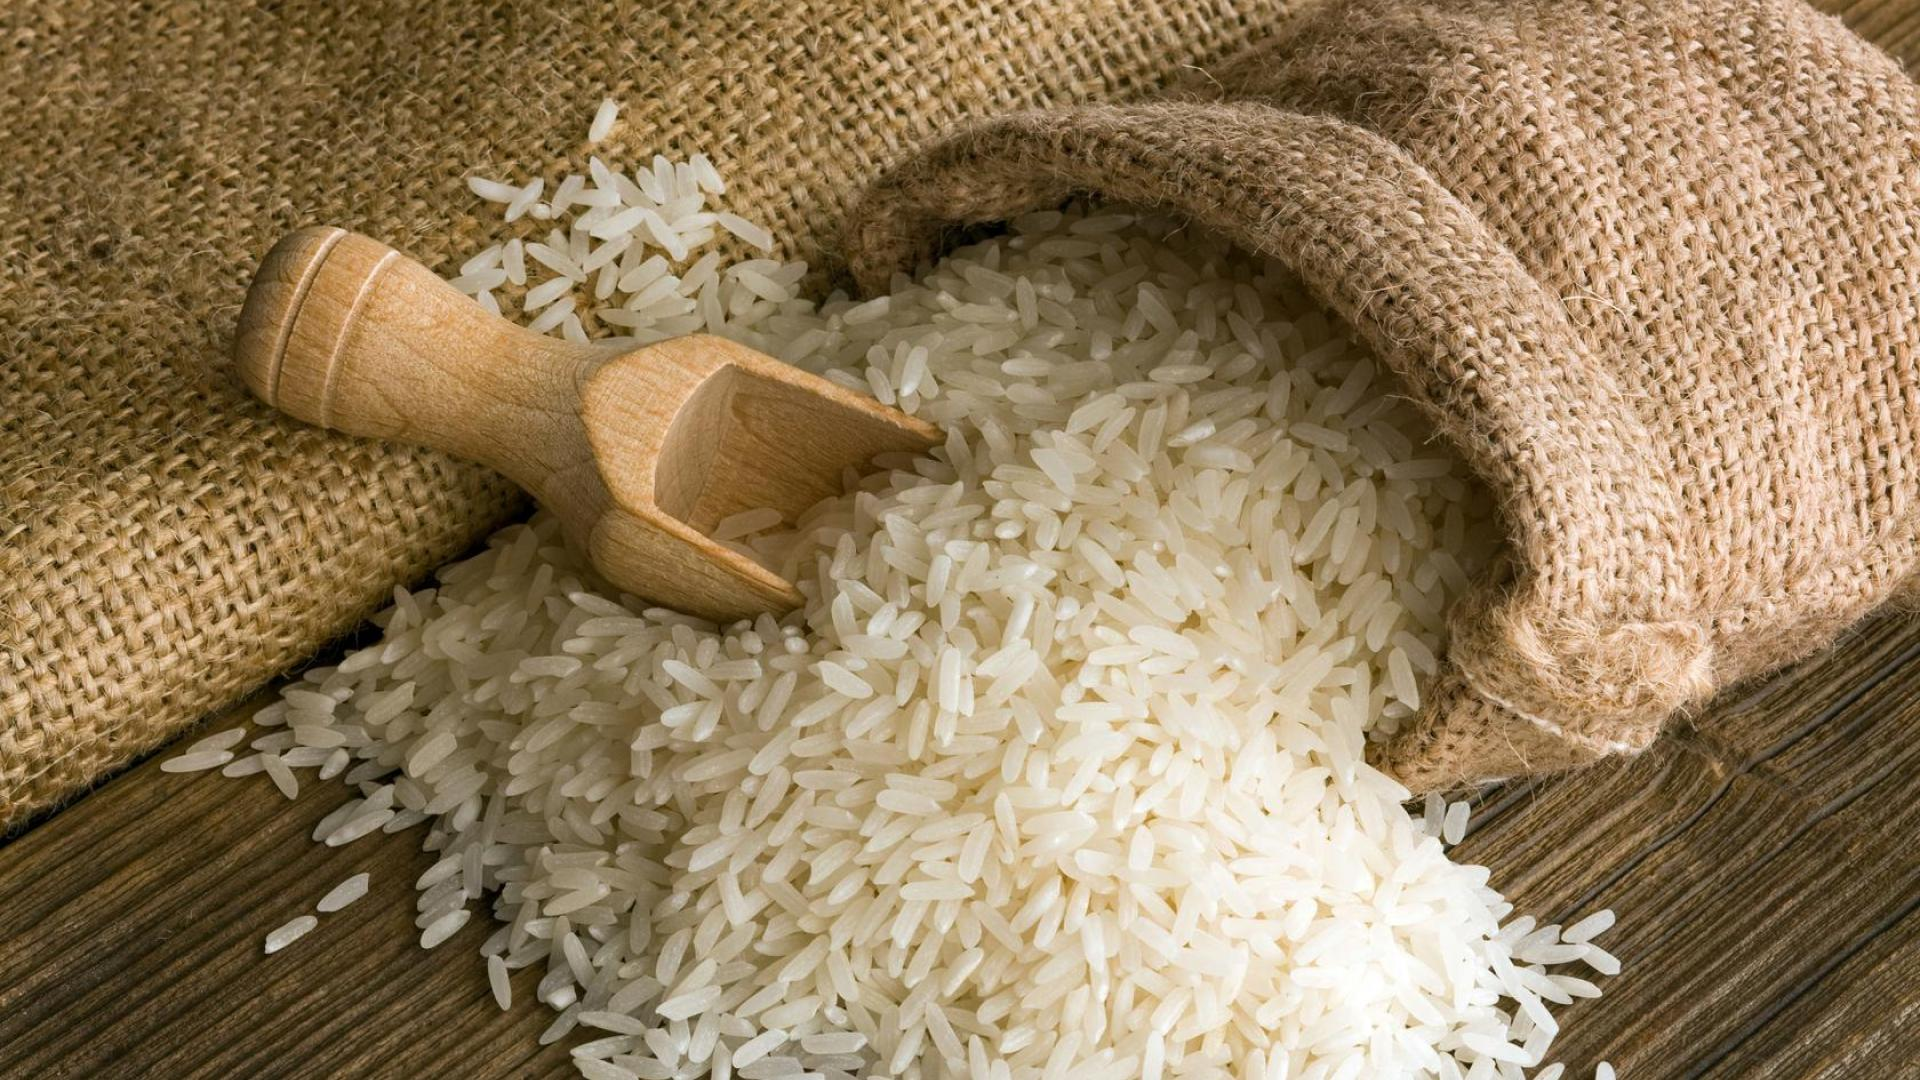 HQ Rice Wallpapers | File 360.8Kb